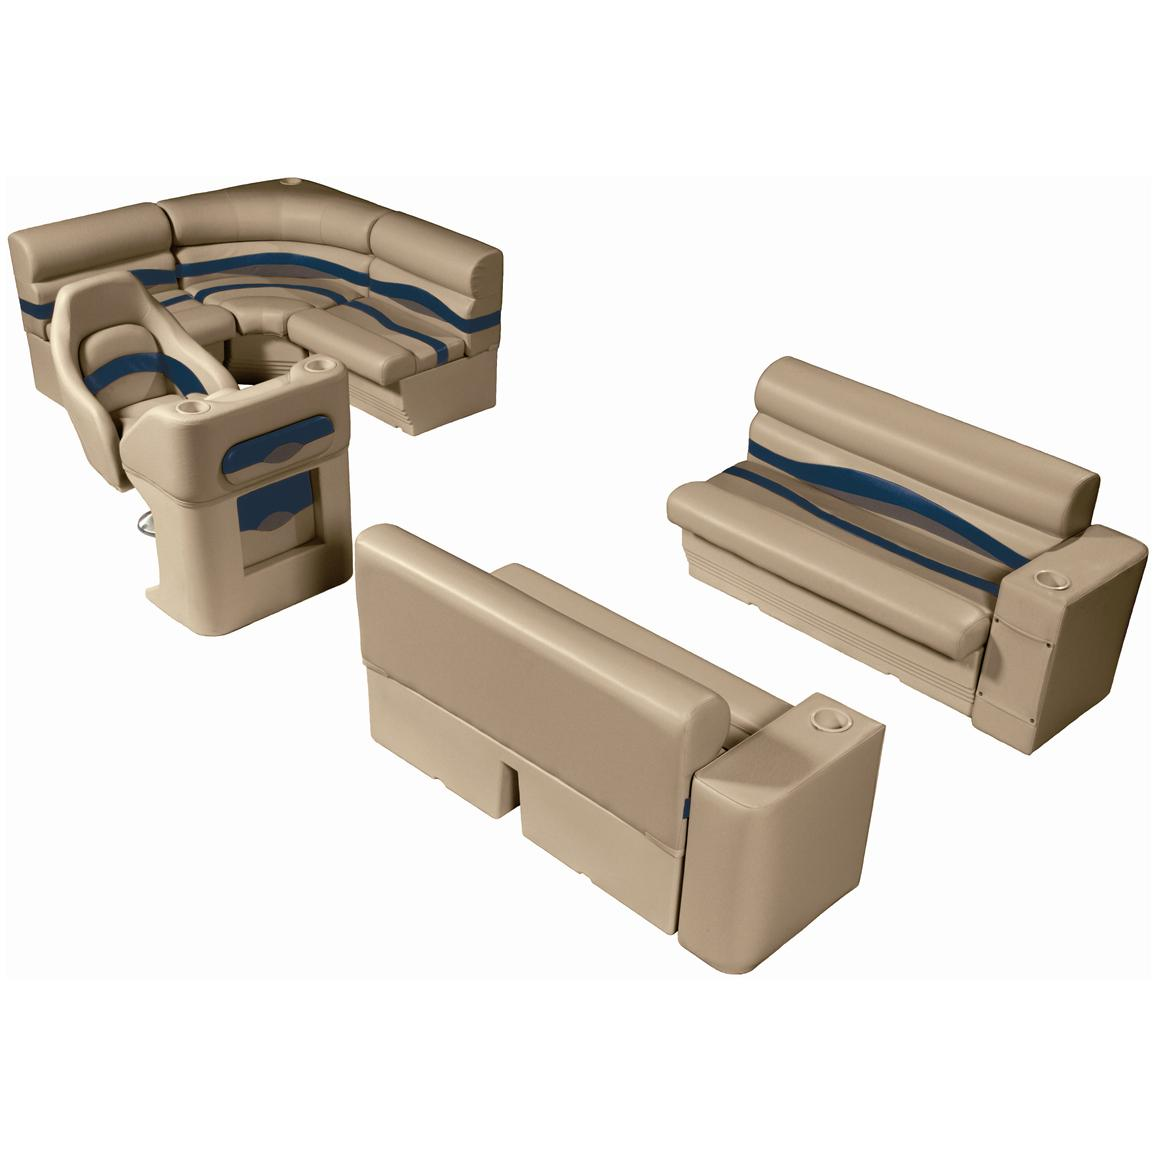 Wise® Premier Seat Group for 8' Rear Entry Pontoons, Color D - Mocha Java Punch / Midnight / Rock Salt